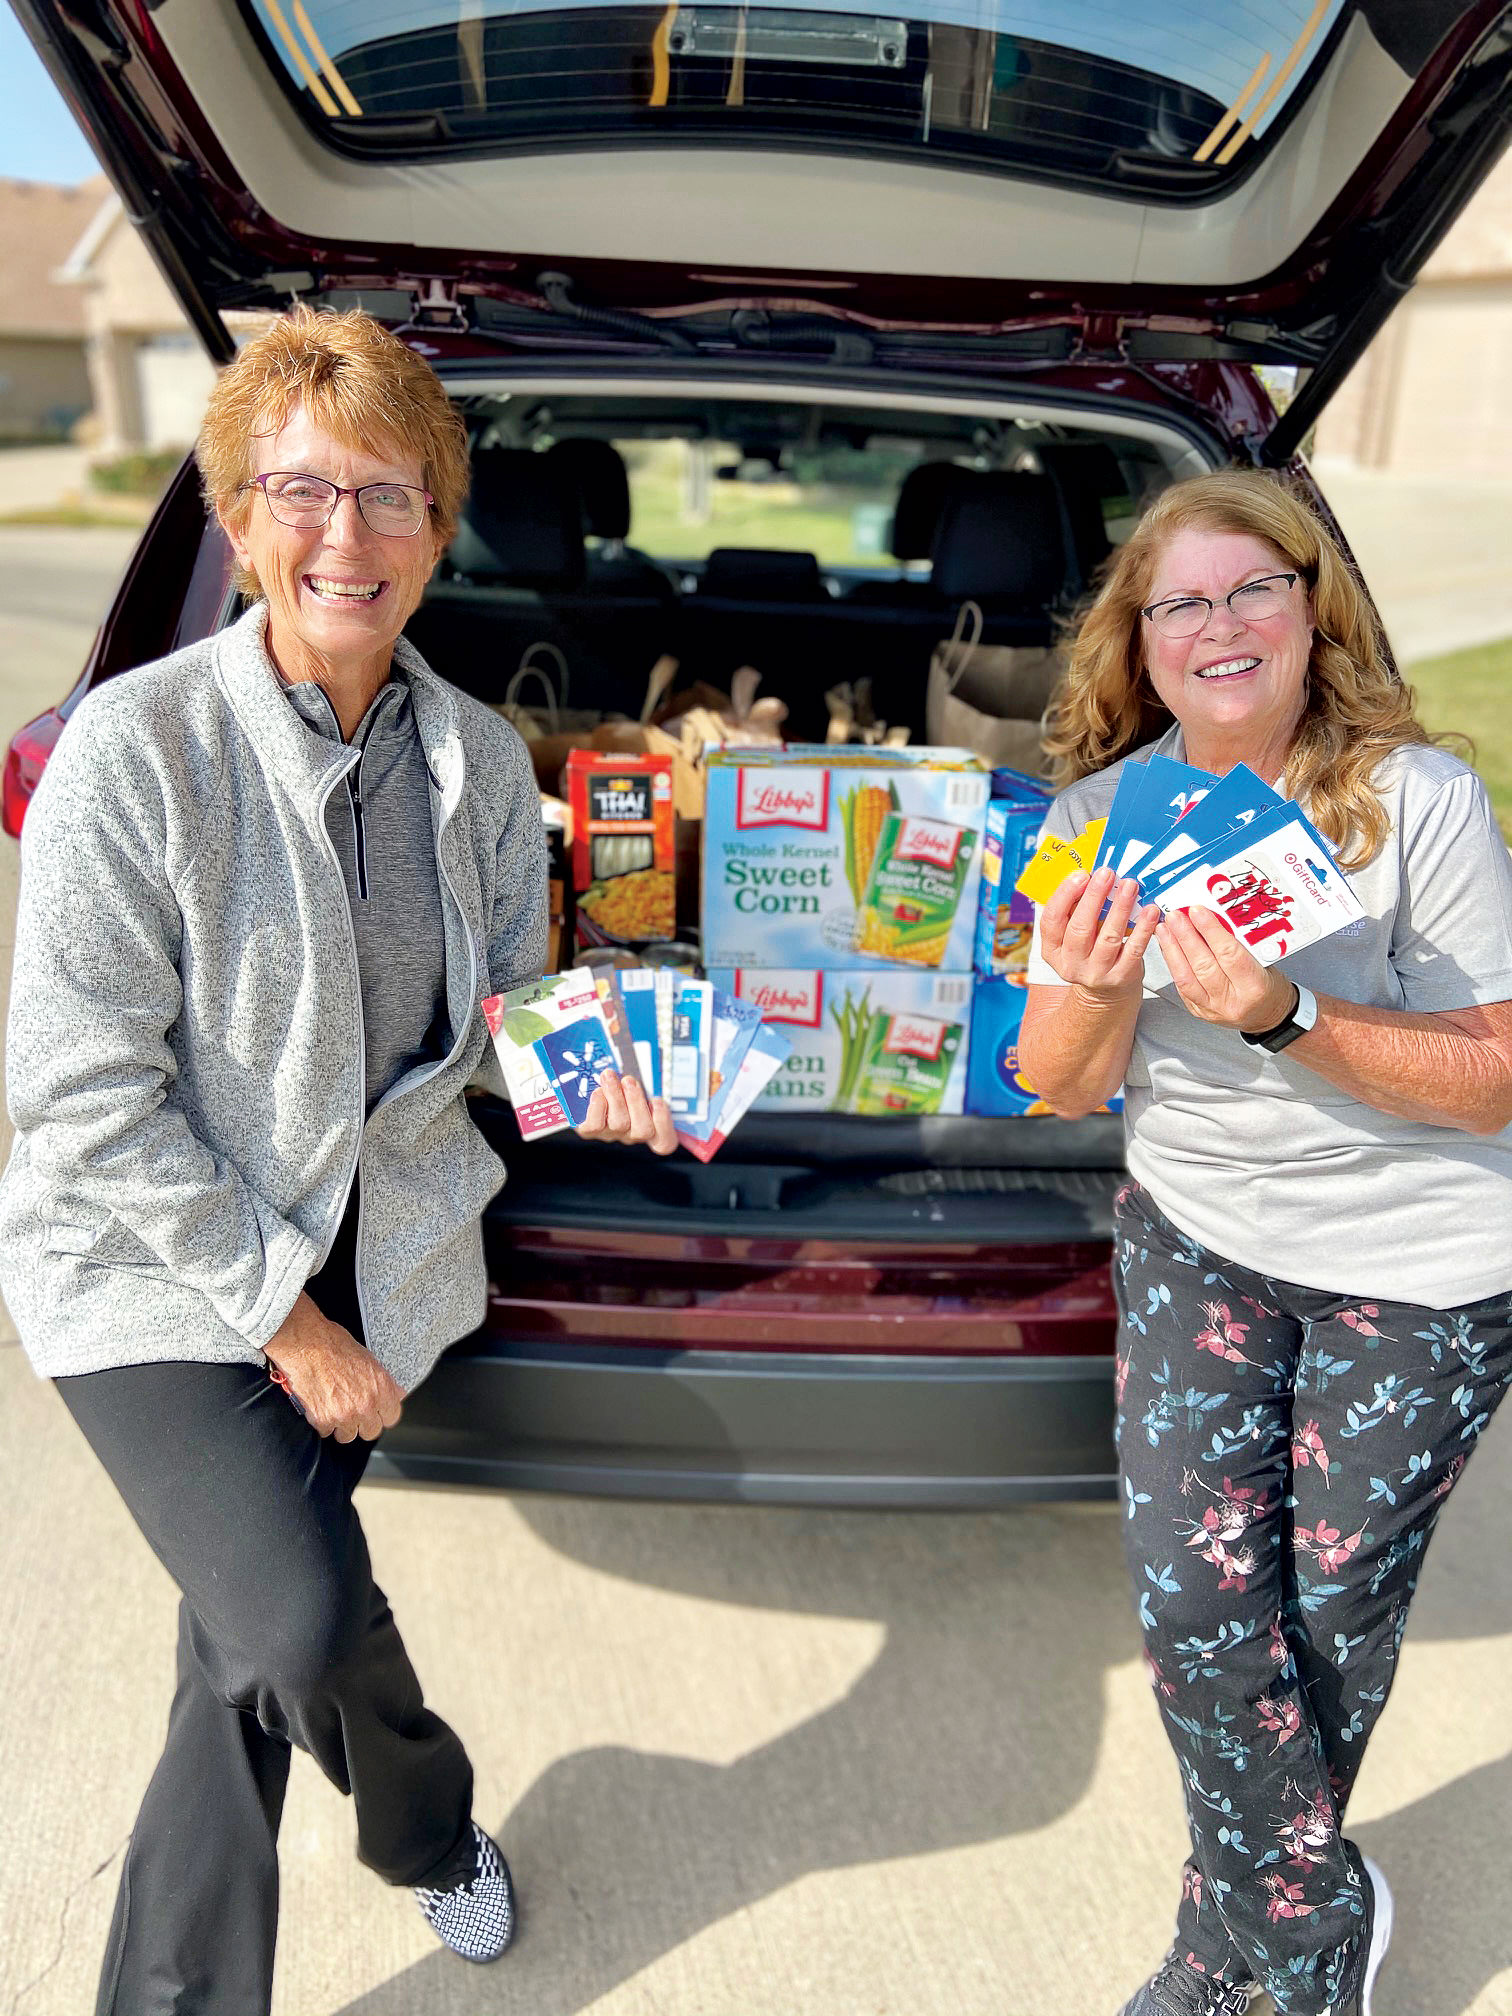 Linda Scott (left) and Cindy Sterling dropping off food and gift card donations to Our Daily Bread in Denton, Texas.